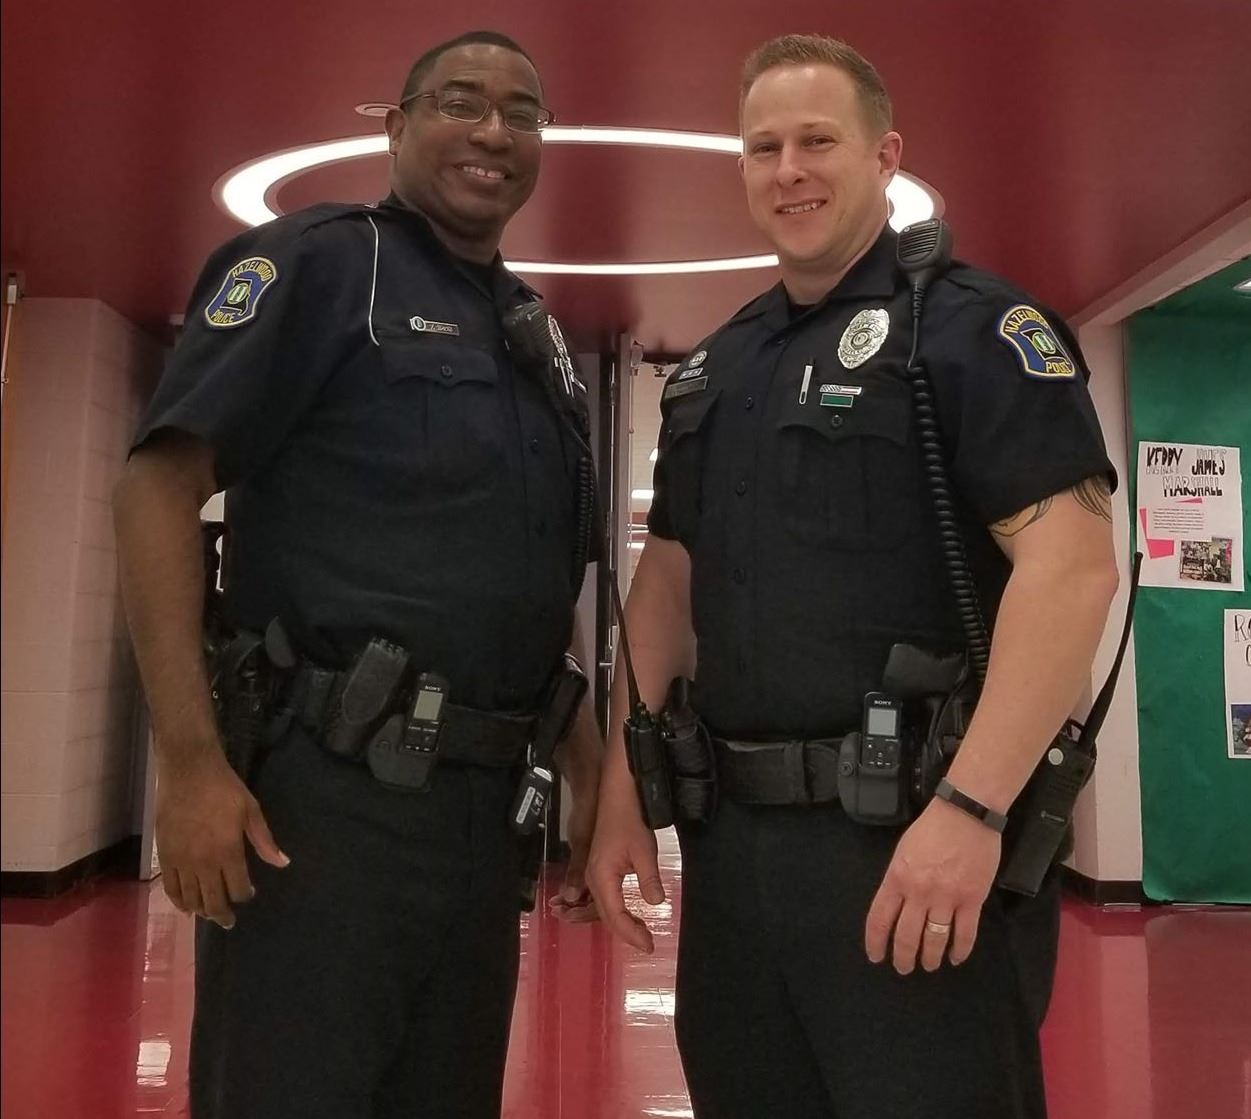 School Resource Officers - West High